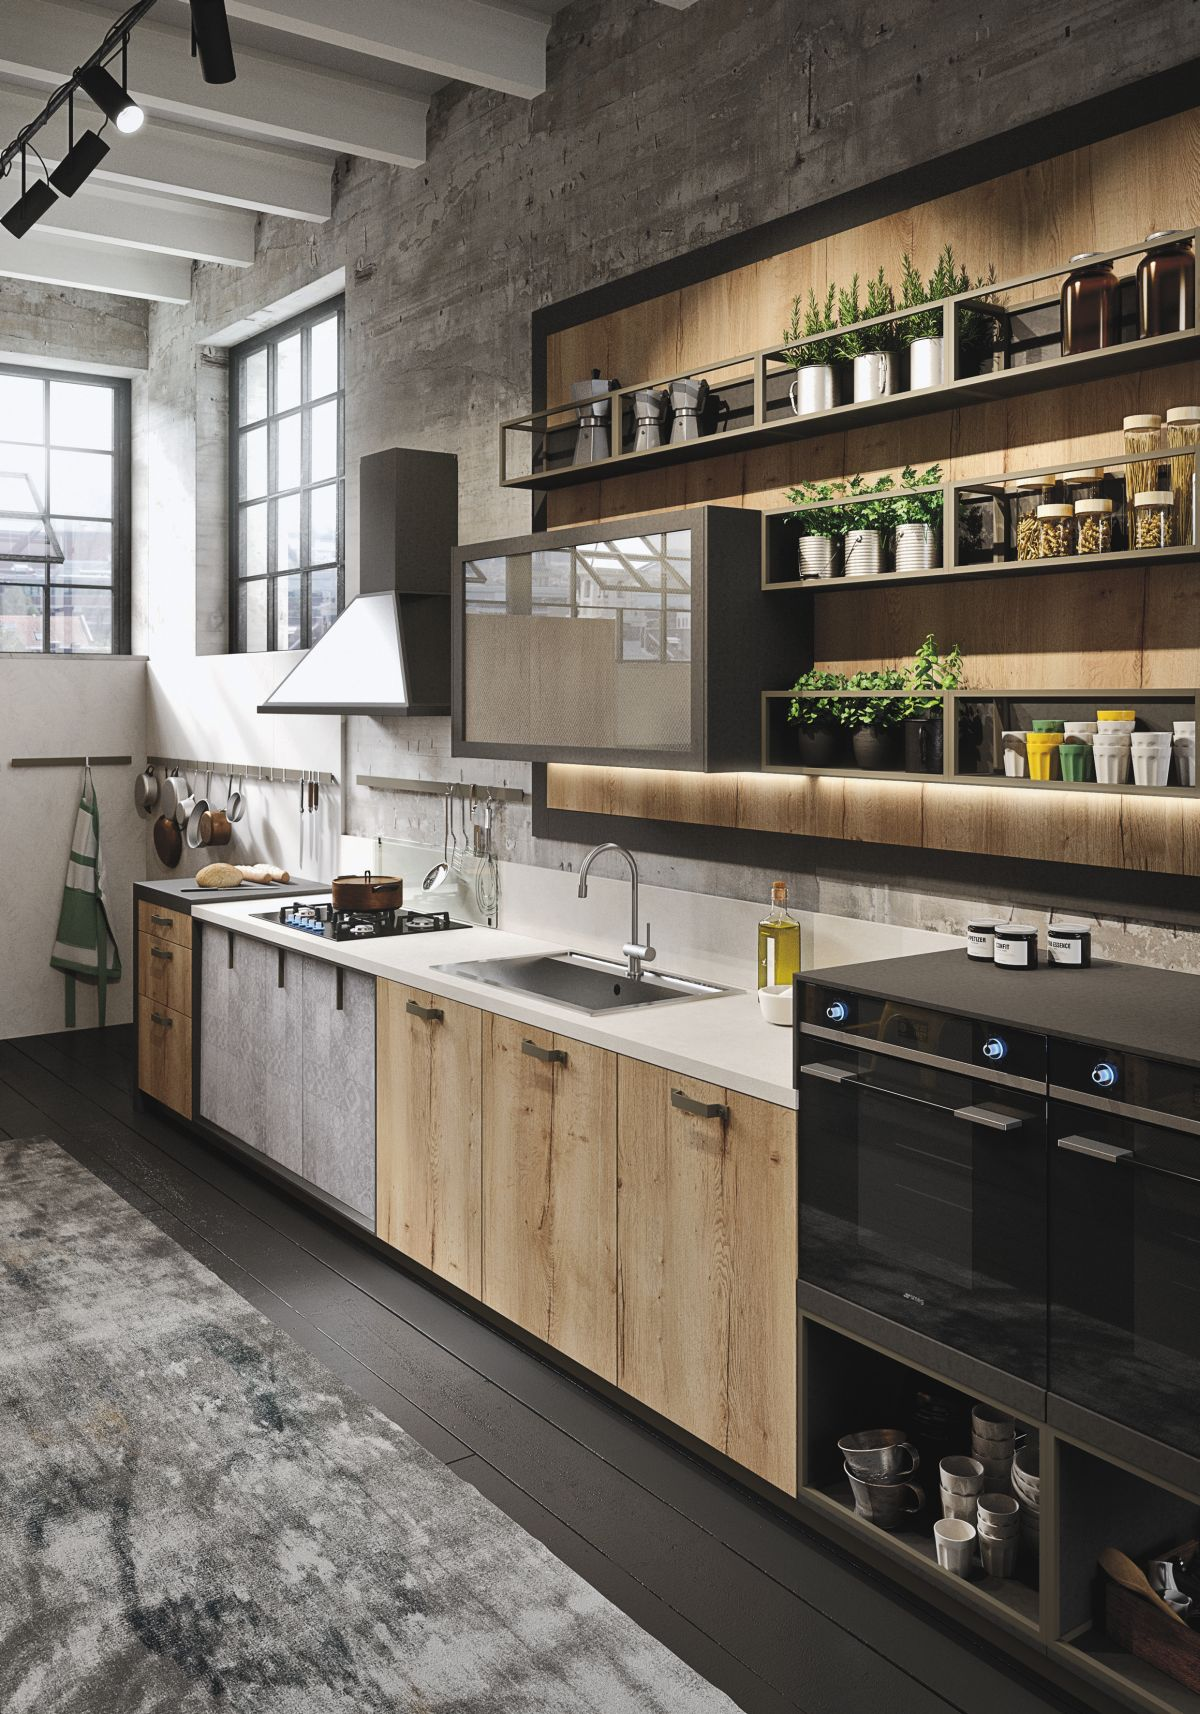 Kitchen Cabinet Trends 2018 Combined With Beauty Salon Wall Art Industiral And Rustic Loft Kitchen By Snaidero Digsdigs